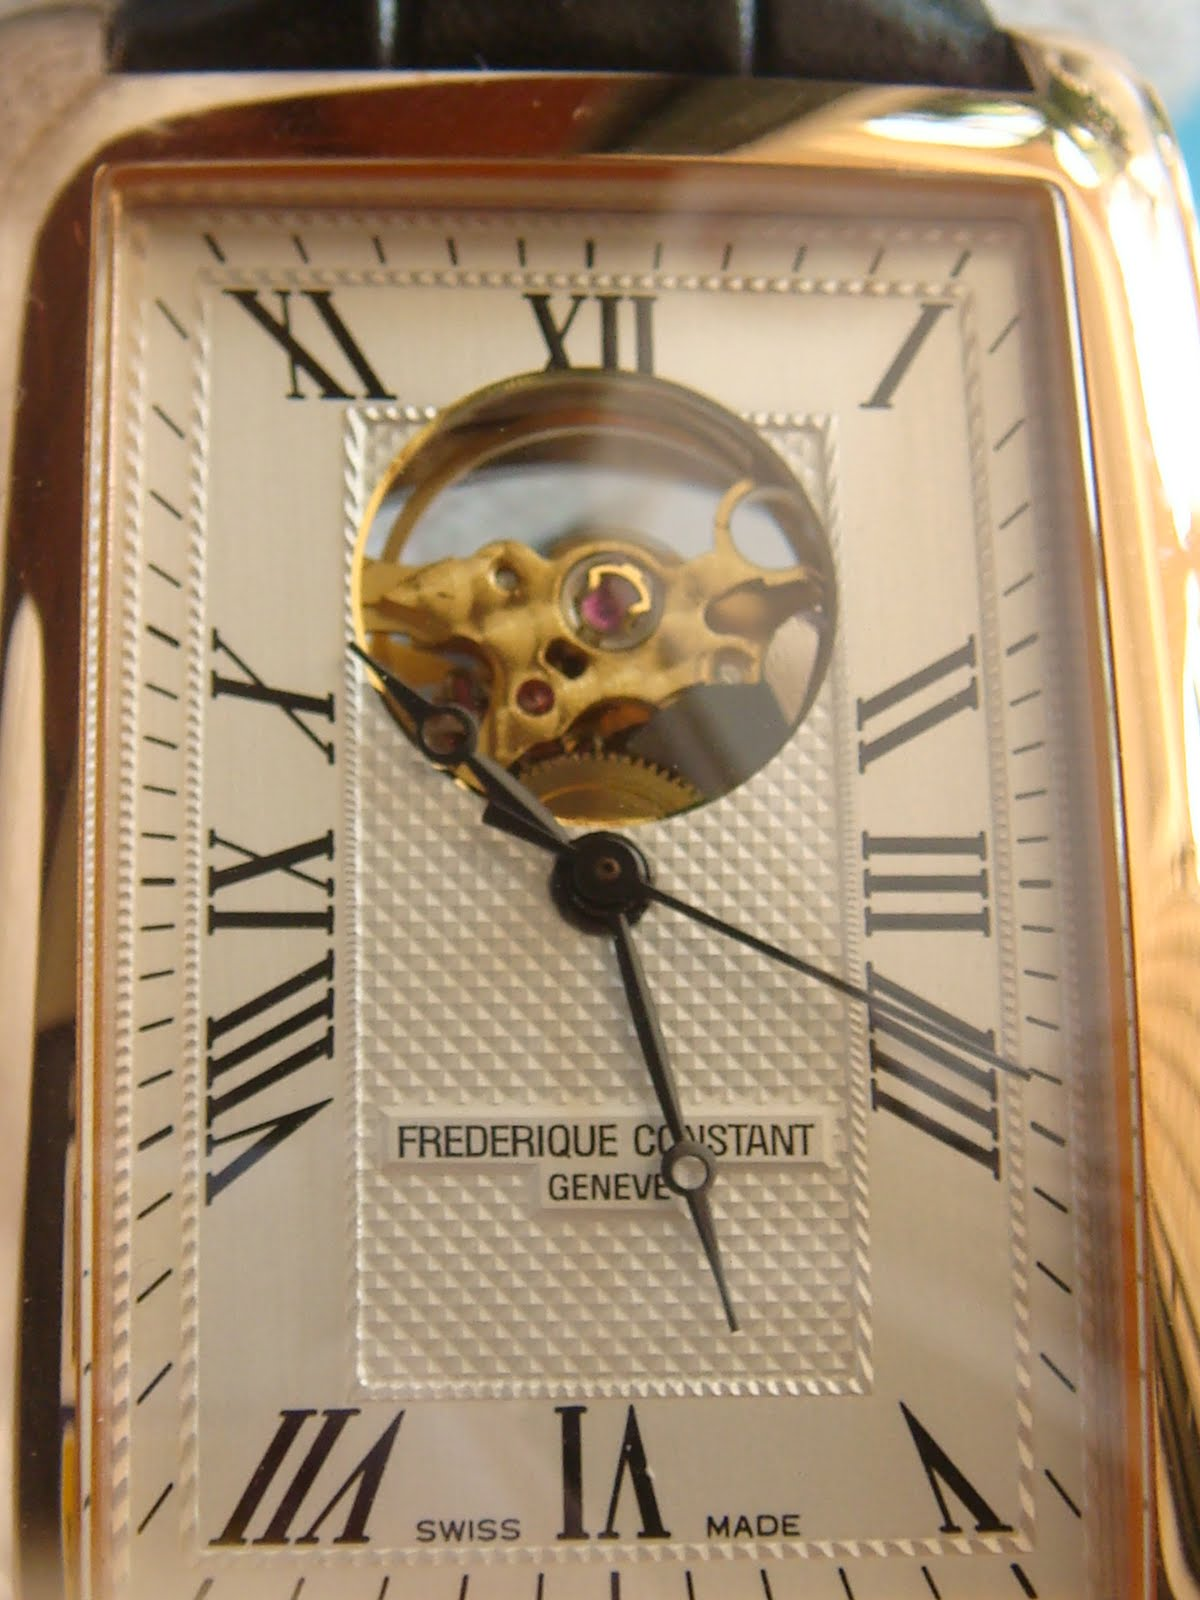 how to open back of watch frederique constant